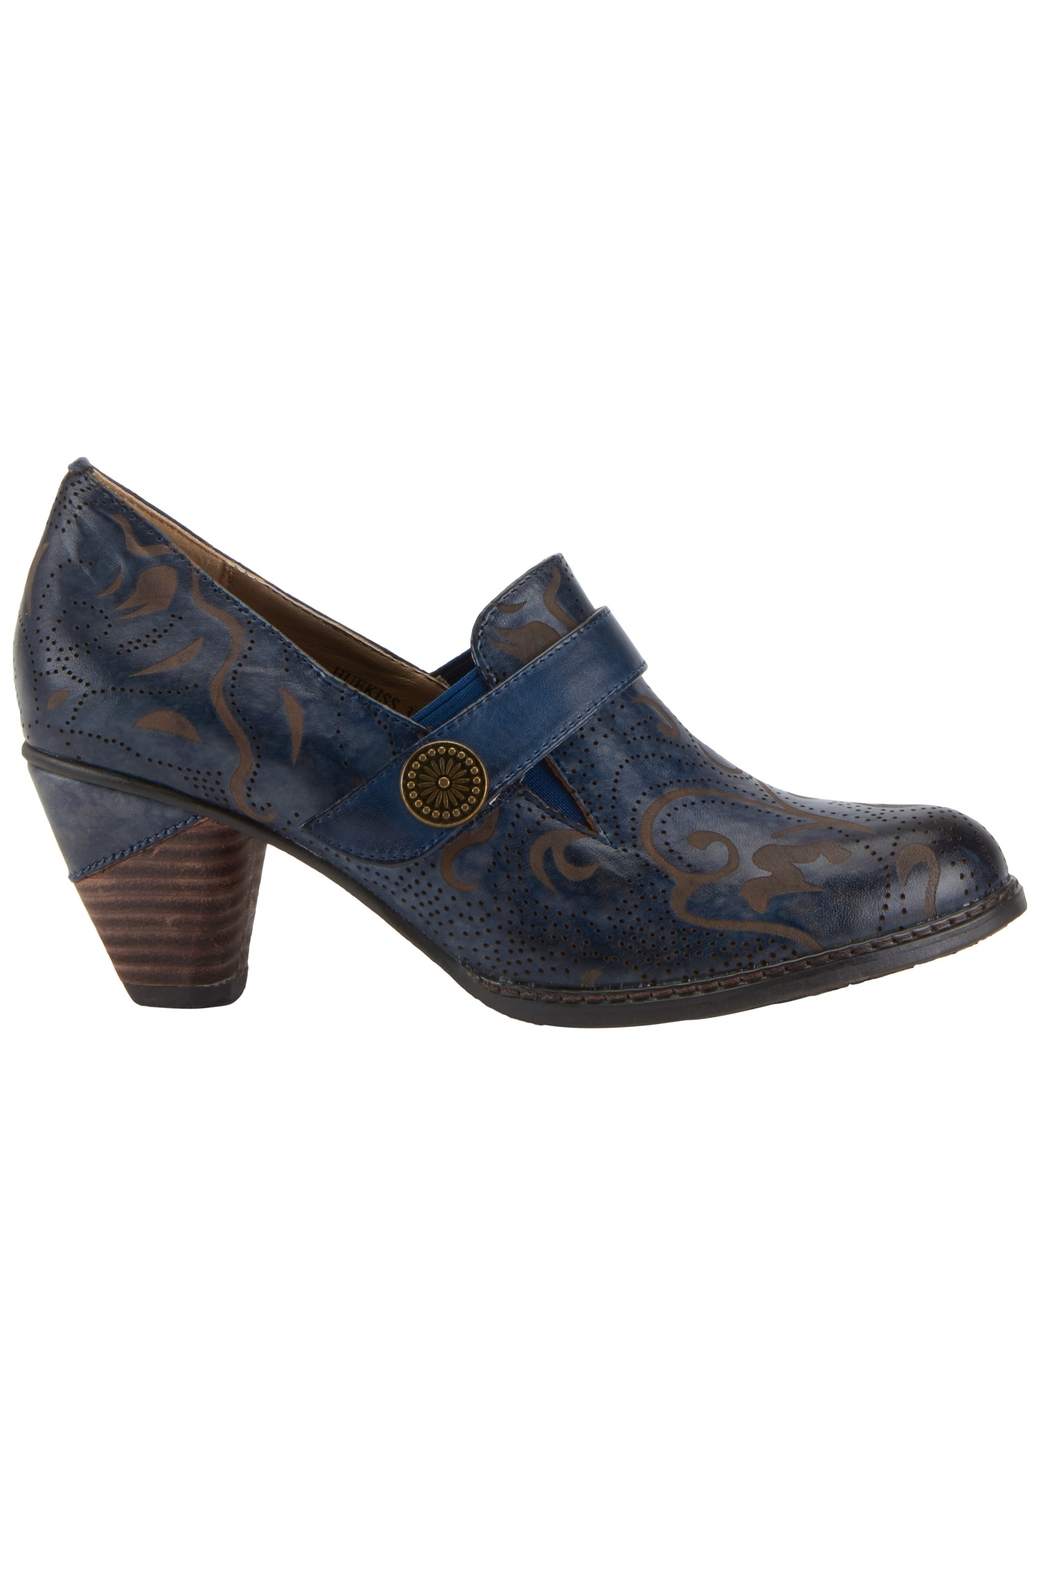 Spring Footwear Sassy Blue Shoes - Front Full Image